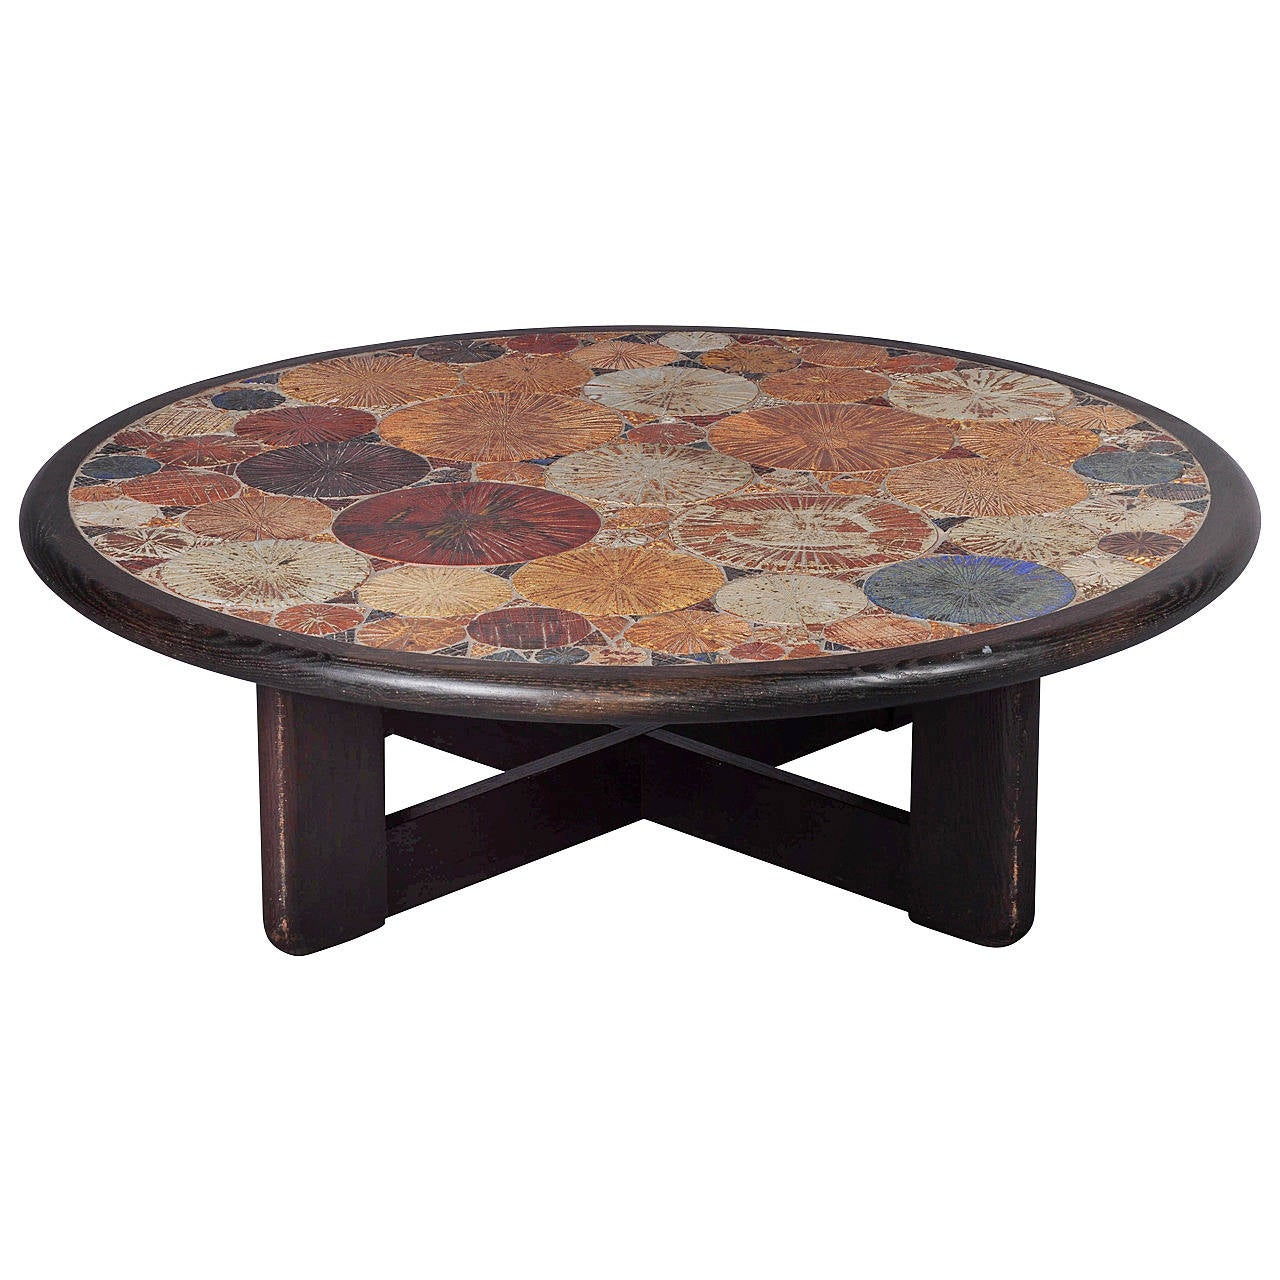 Tue Poulsen Ceramic Coffee Table At 1stdibs